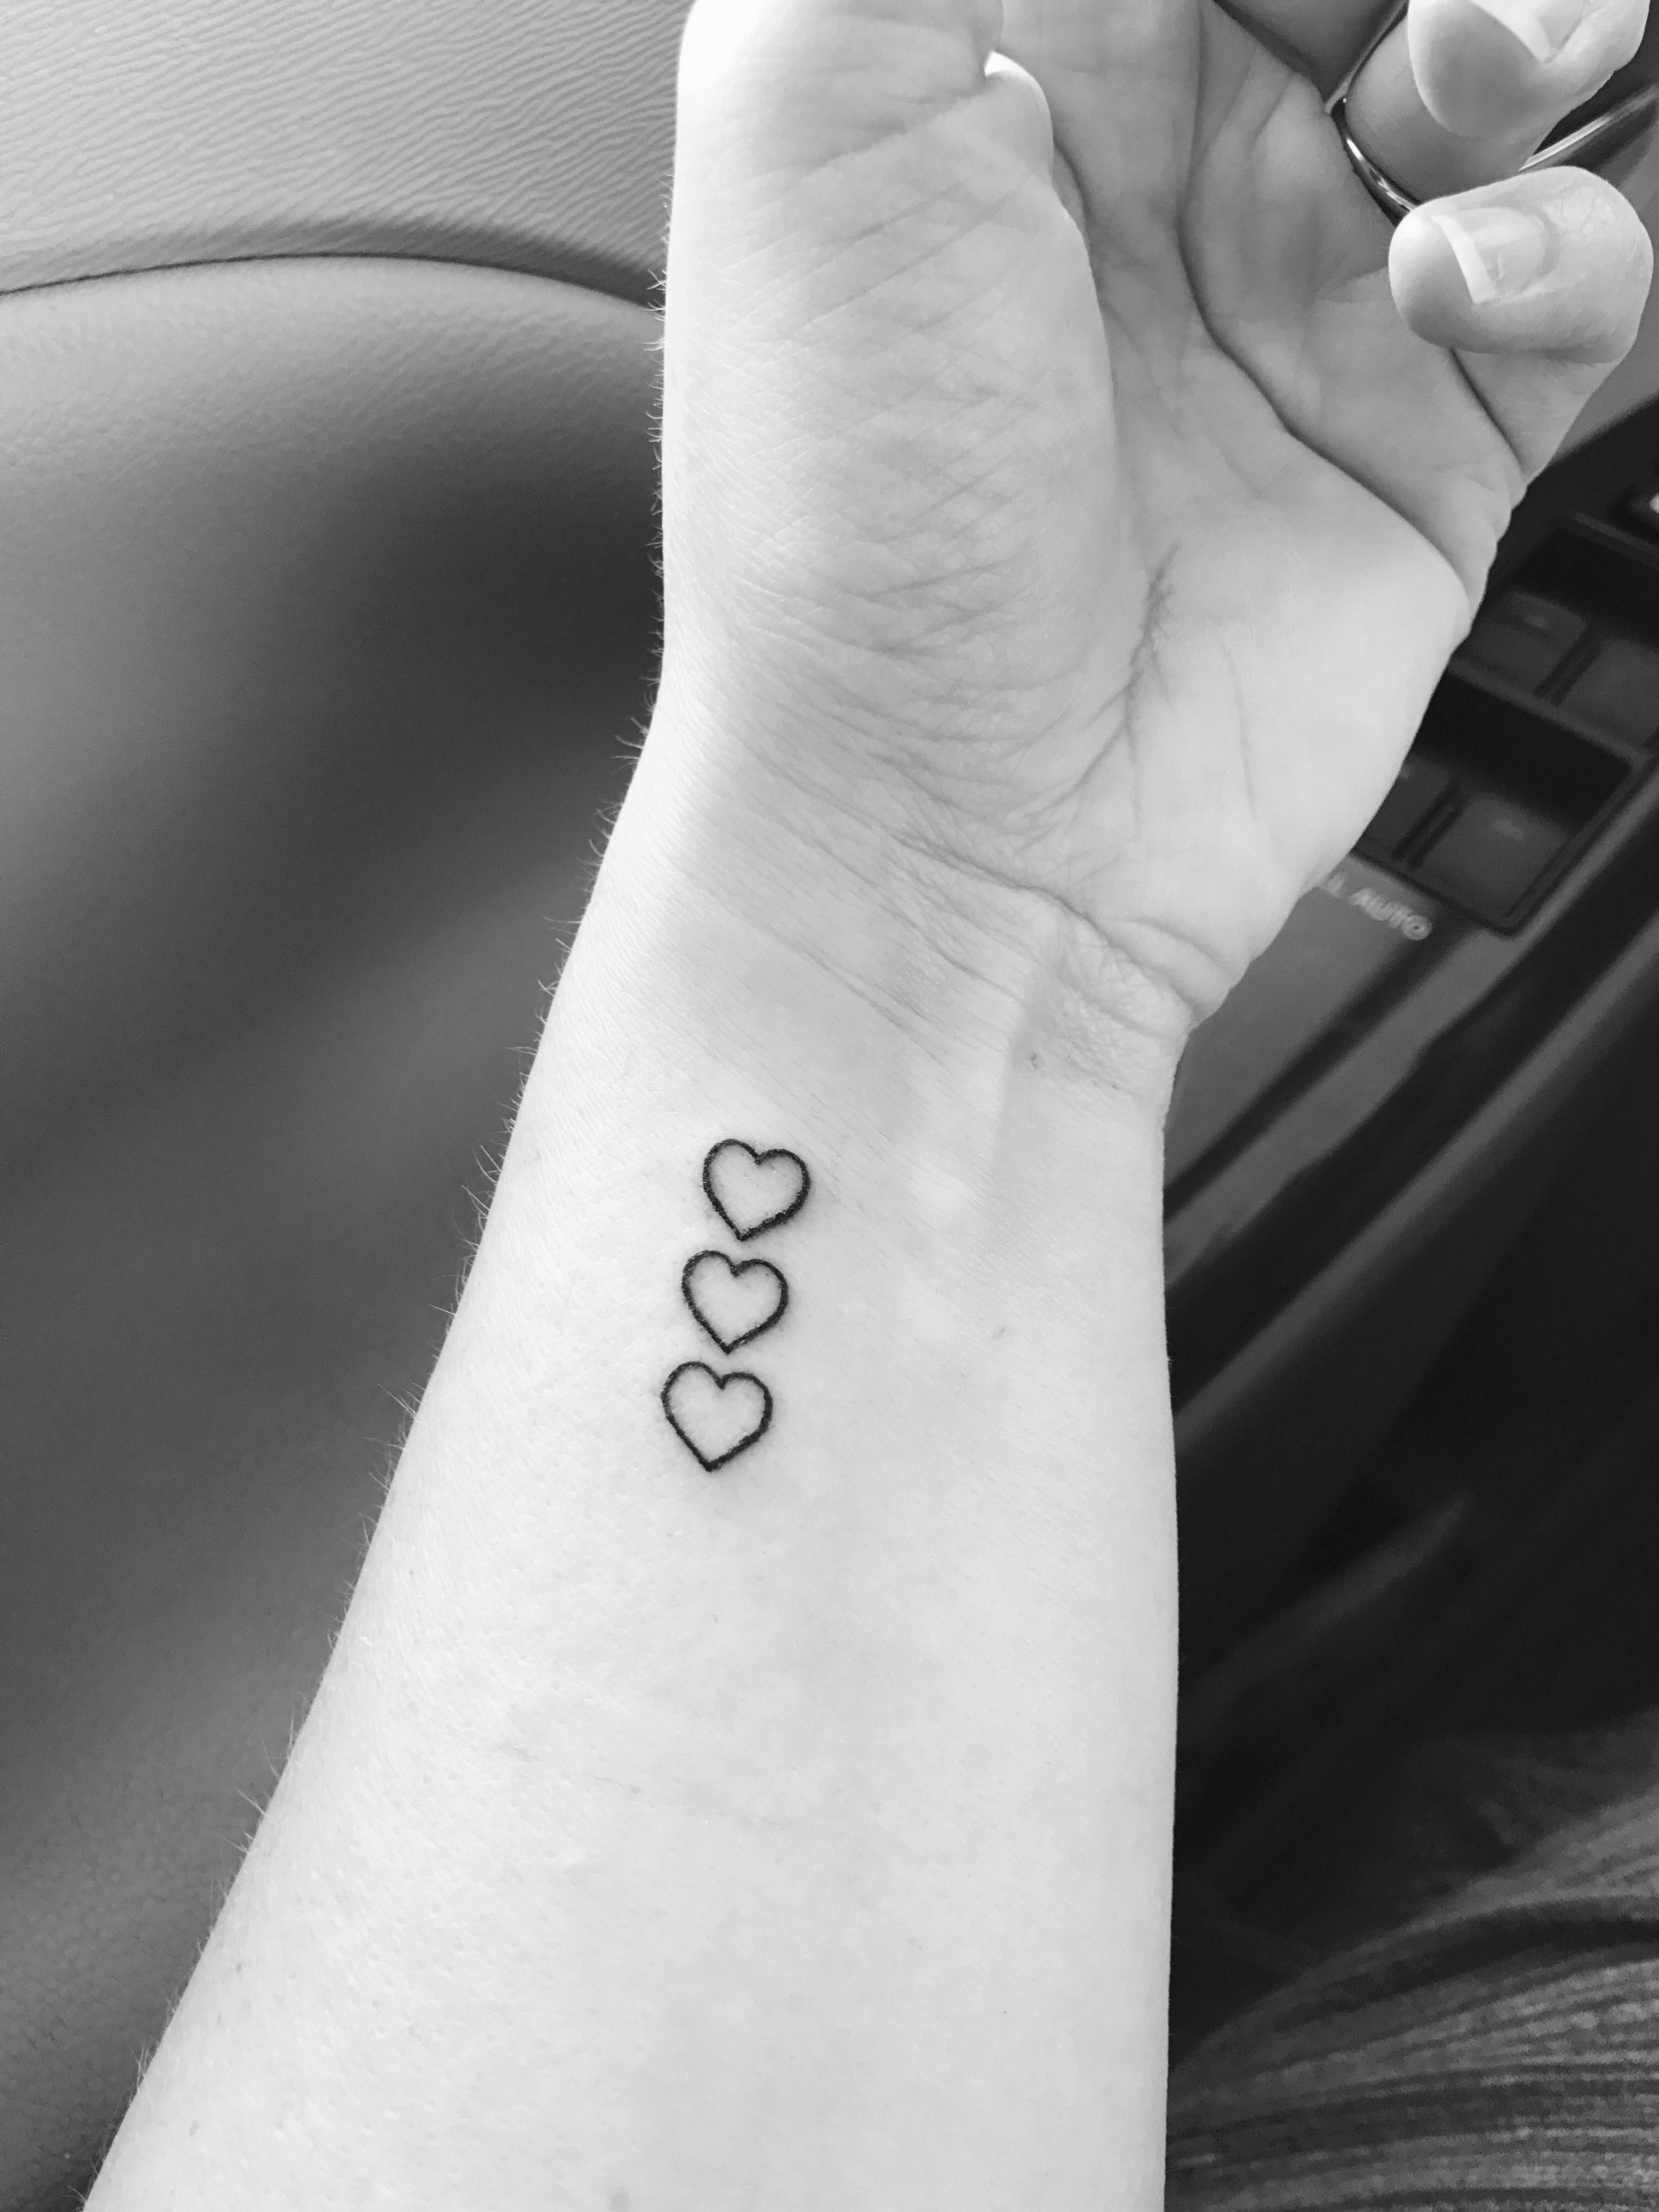 Celtic Tattoos For Women And Meanings Tattoosforwomen Tattoos